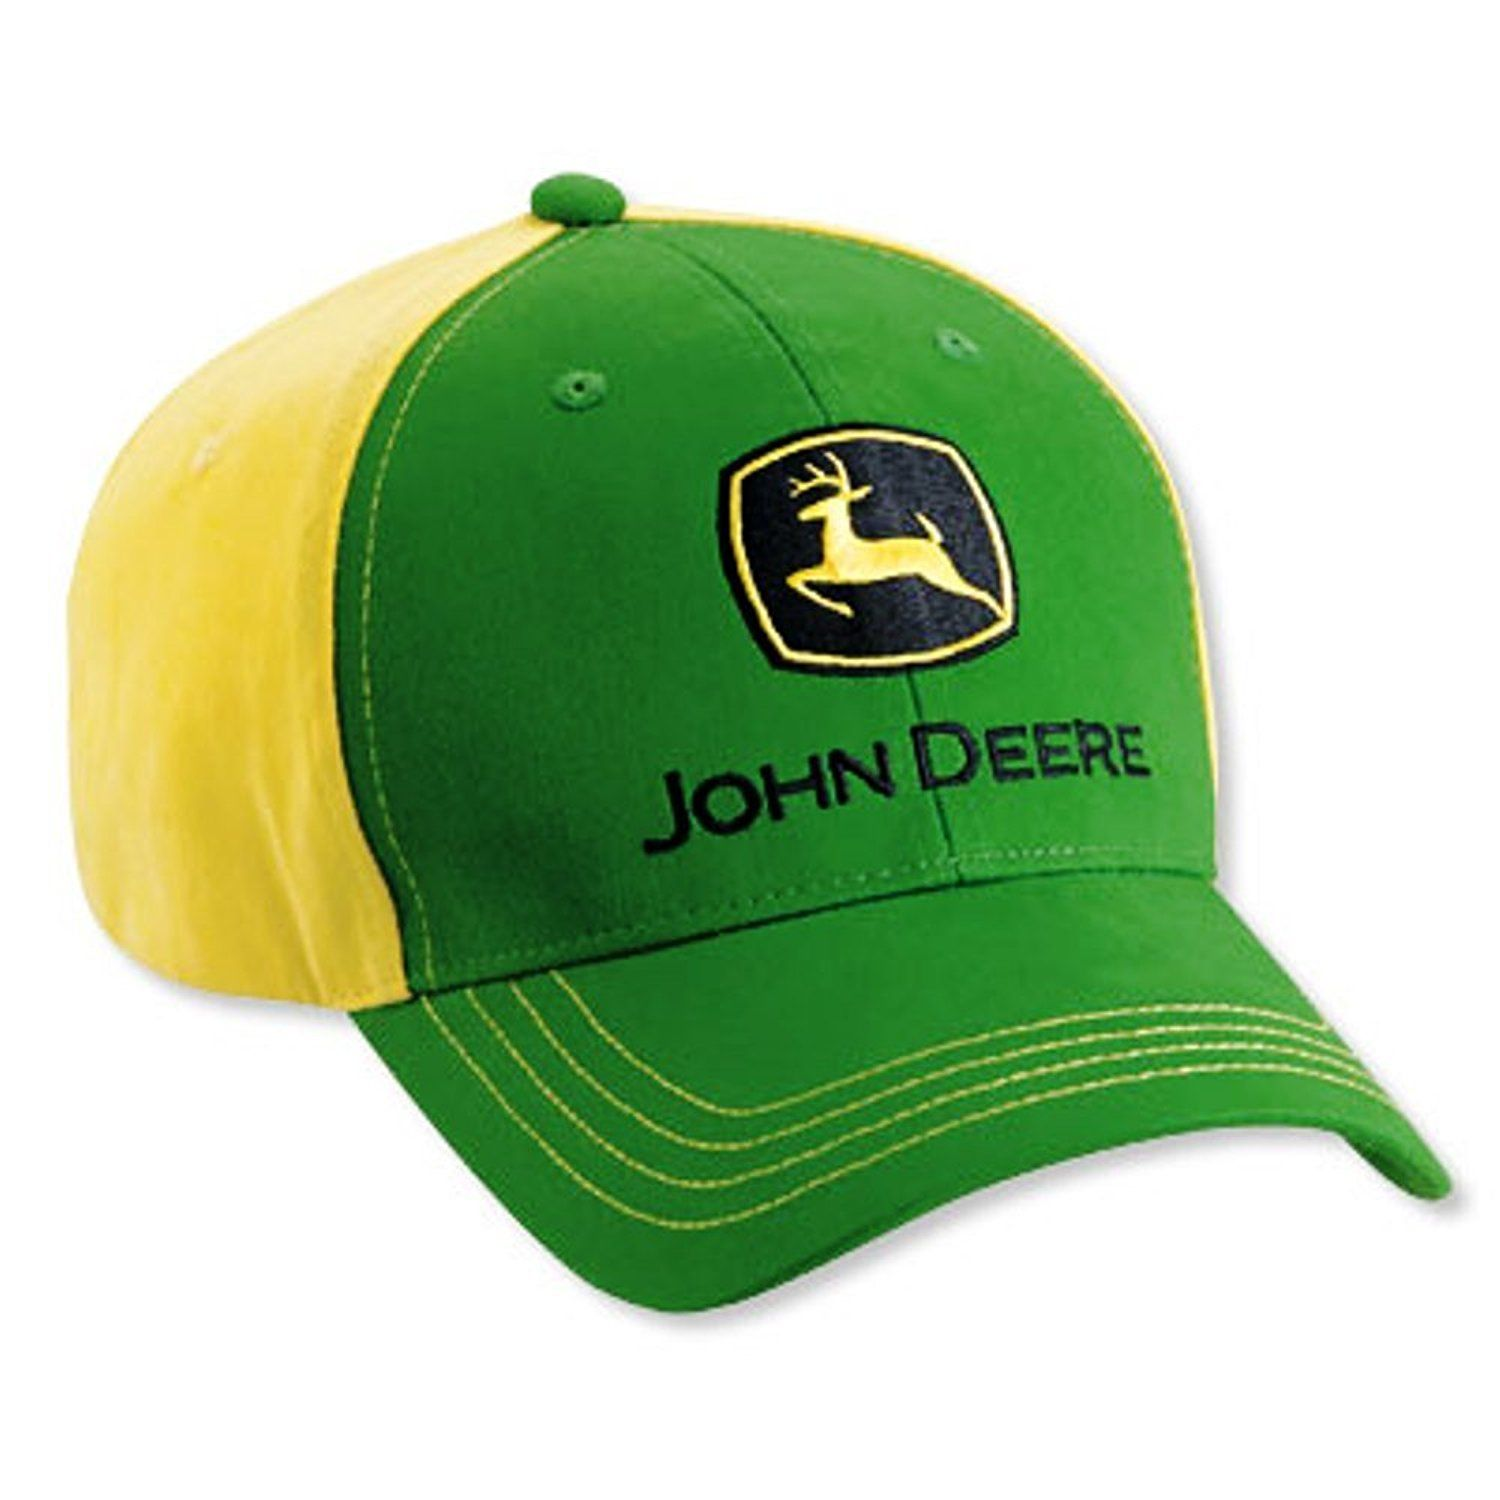 John Deere Green Yellow Youth Colorblock Hat   For more information ... 4f02bcb54e1